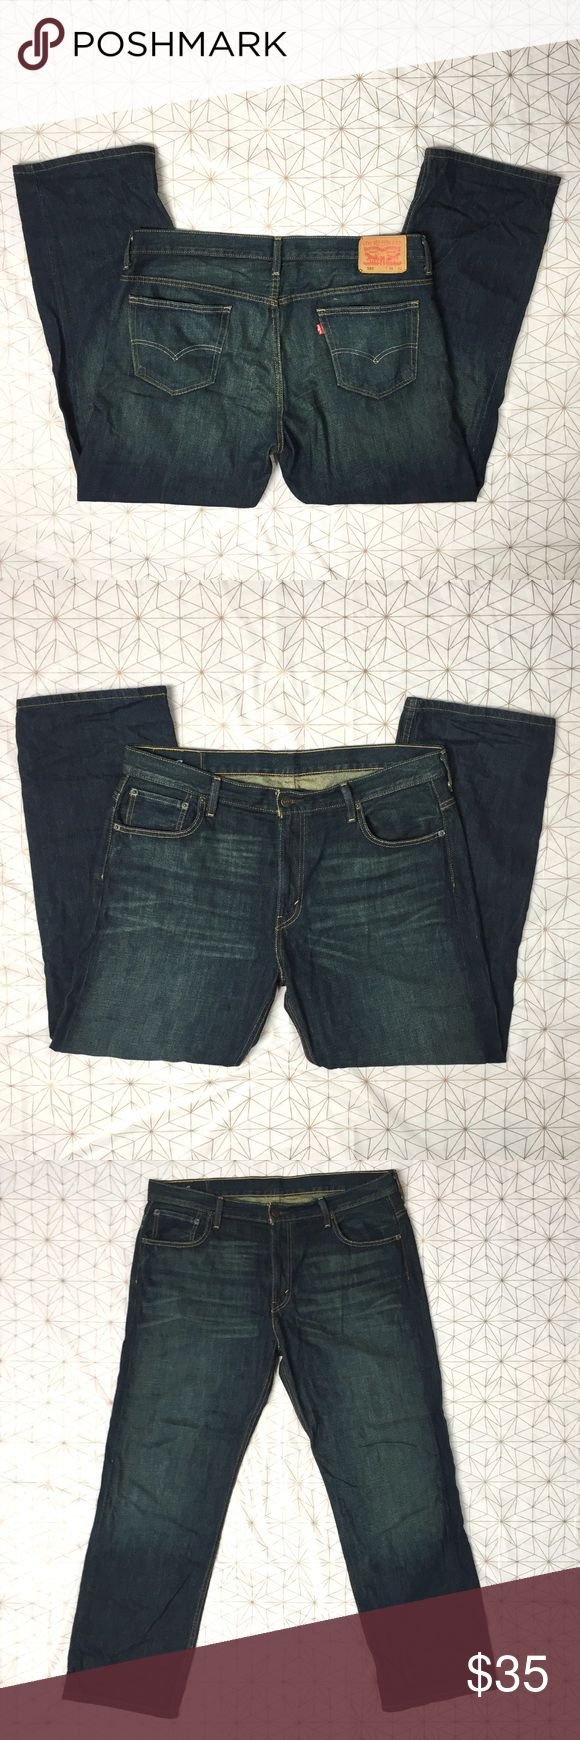 Levi's 569 dark was bootcut jeans - Size: 36 W 32 L - Material: 100% cotton - Condition: EUC - Color: dark wash - Pockets: Y - Lined: N - Closure: zipper and metal button  - Style: Levi's 569 - Extra notes: Levi's Jeans Bootcut